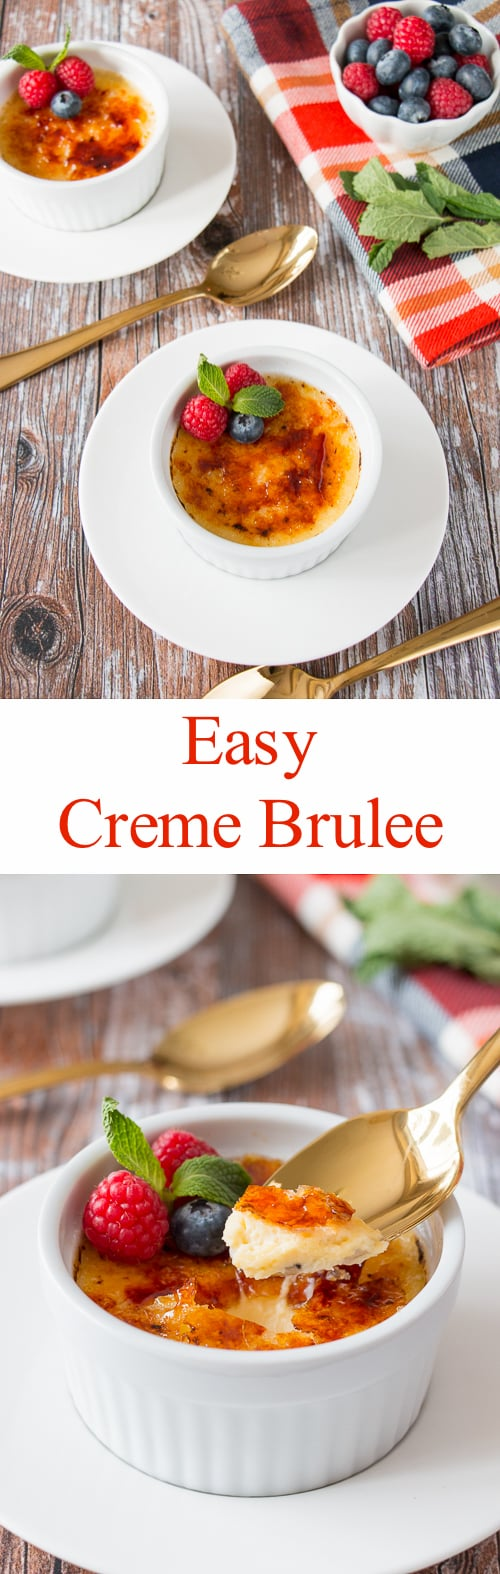 See how easy it is to make creme brulee with just 4 ingredients. There is no need to heat the cream or temper the eggs in this recipe. #cremebrulee #easycremebrulee #vanillacremebrulee